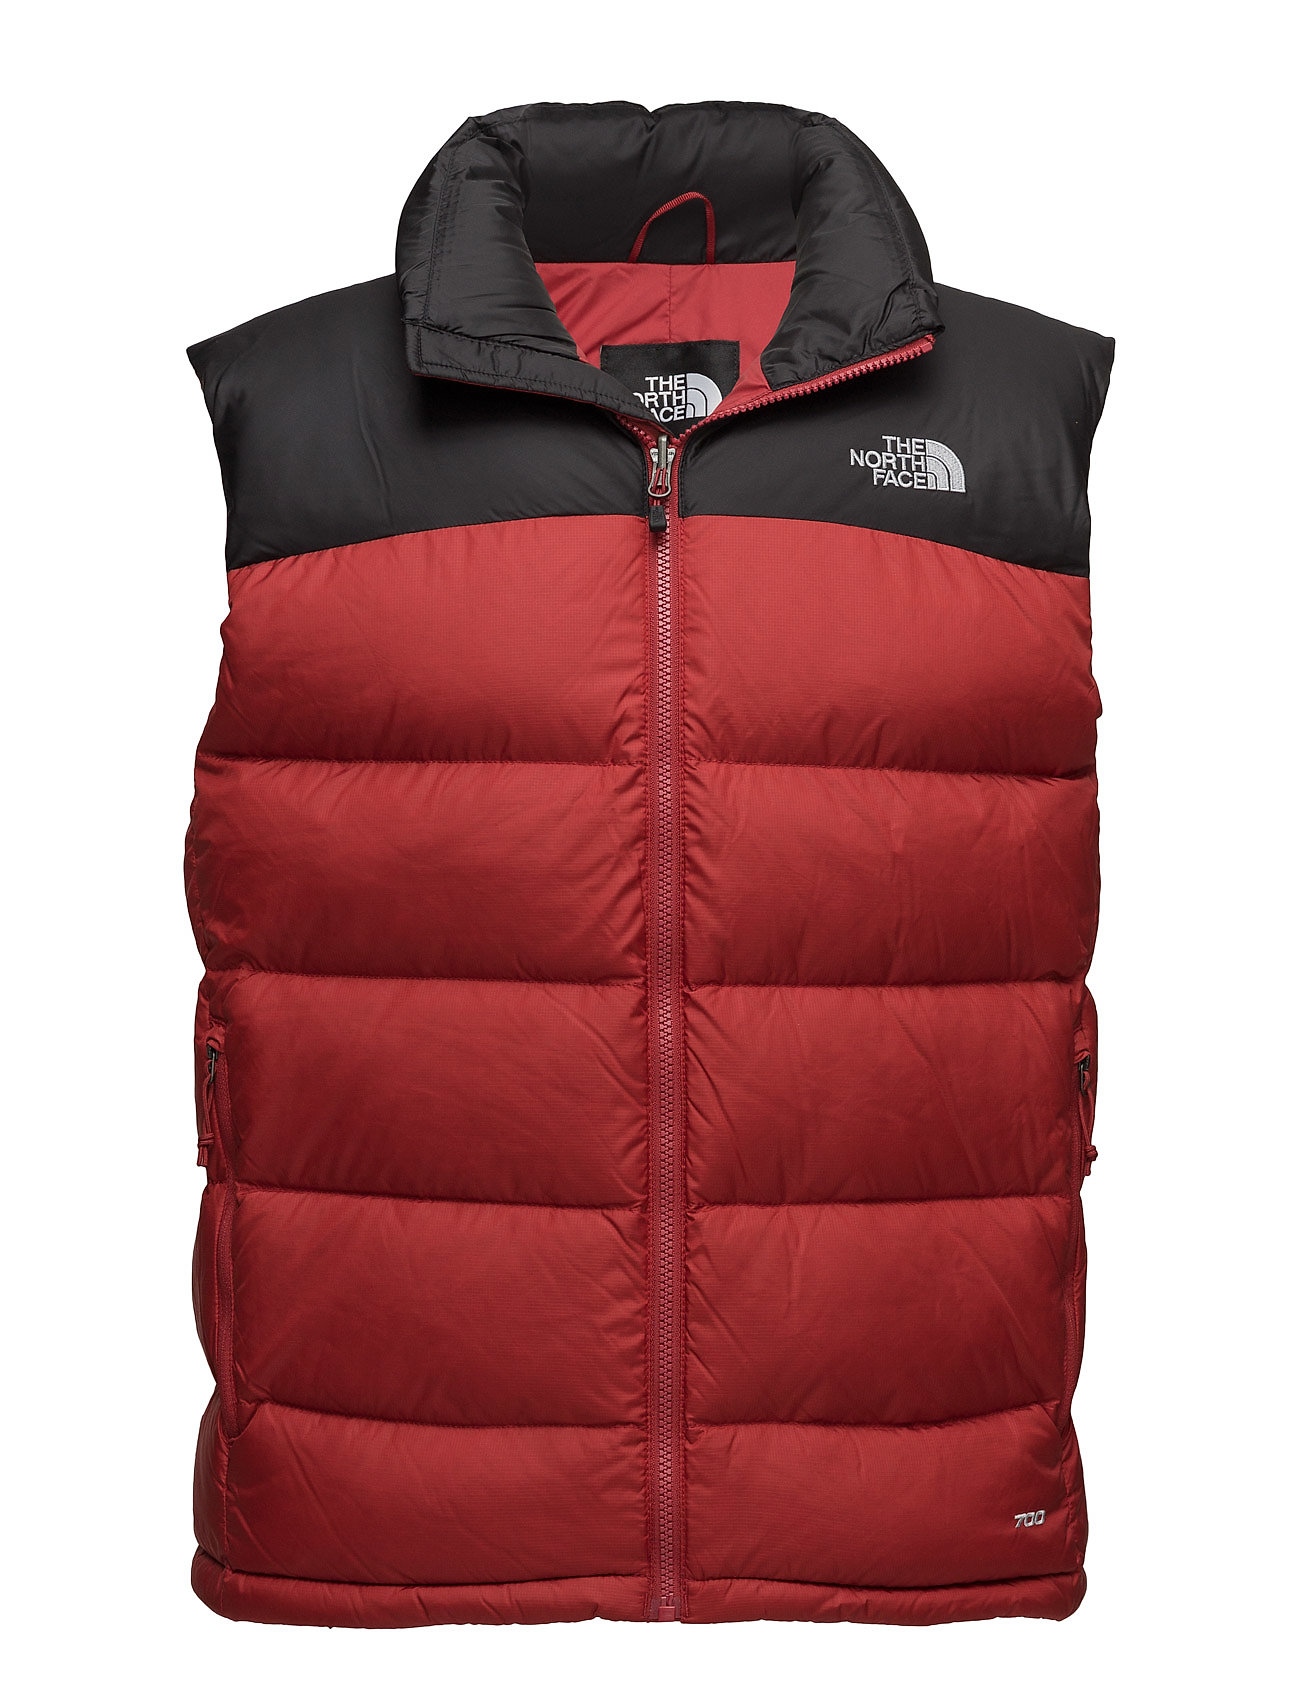 the north face M nuptse 2 vest på boozt.com dk